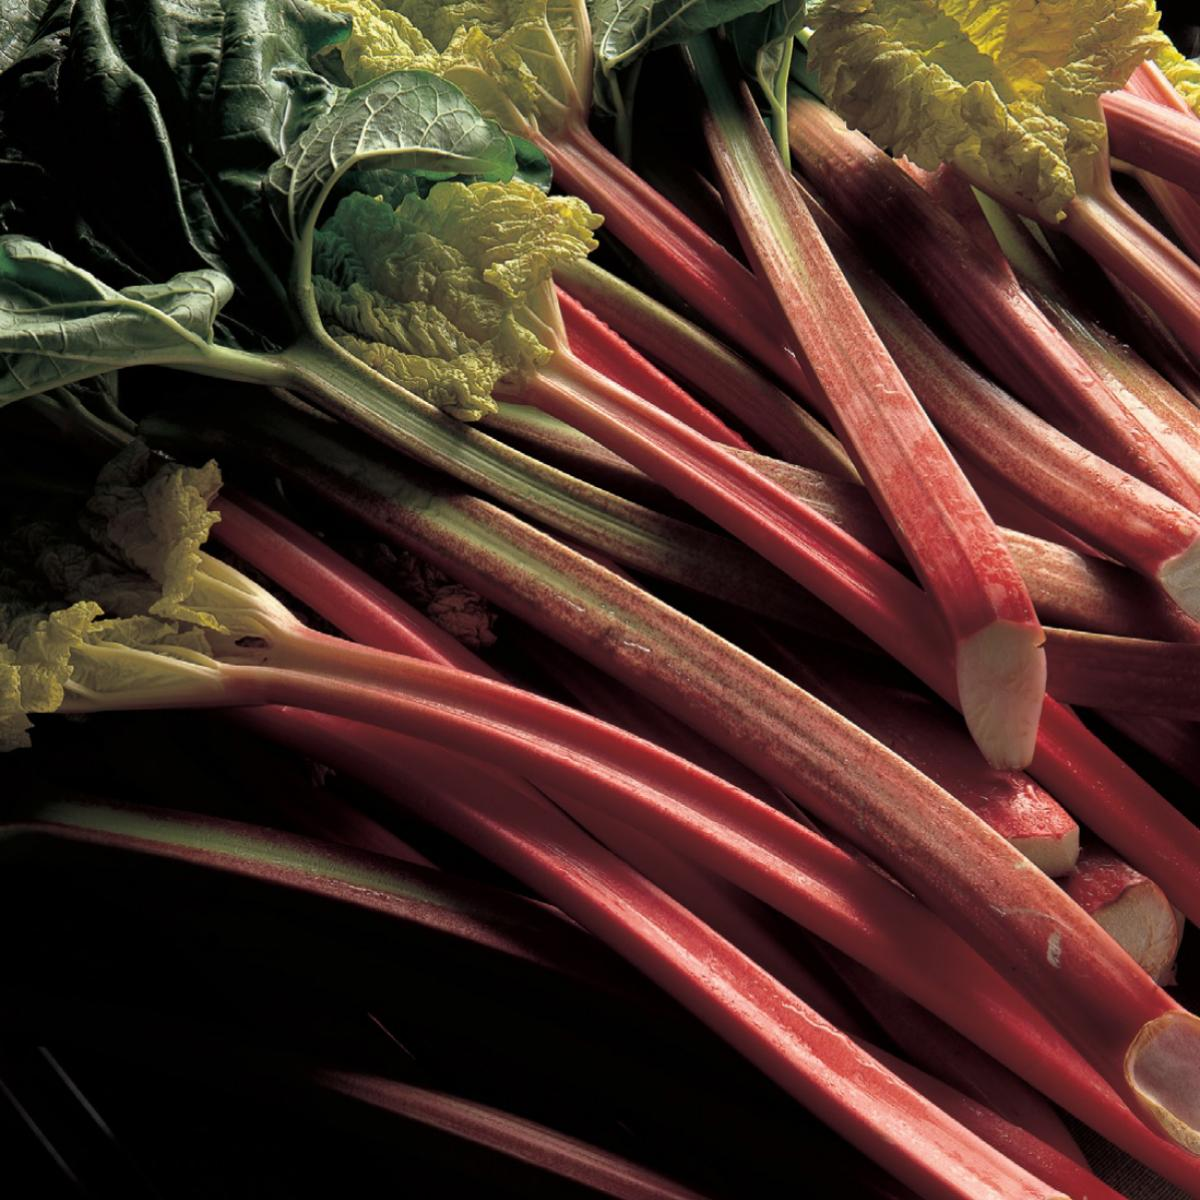 Ingredient vegetarian rhubarb